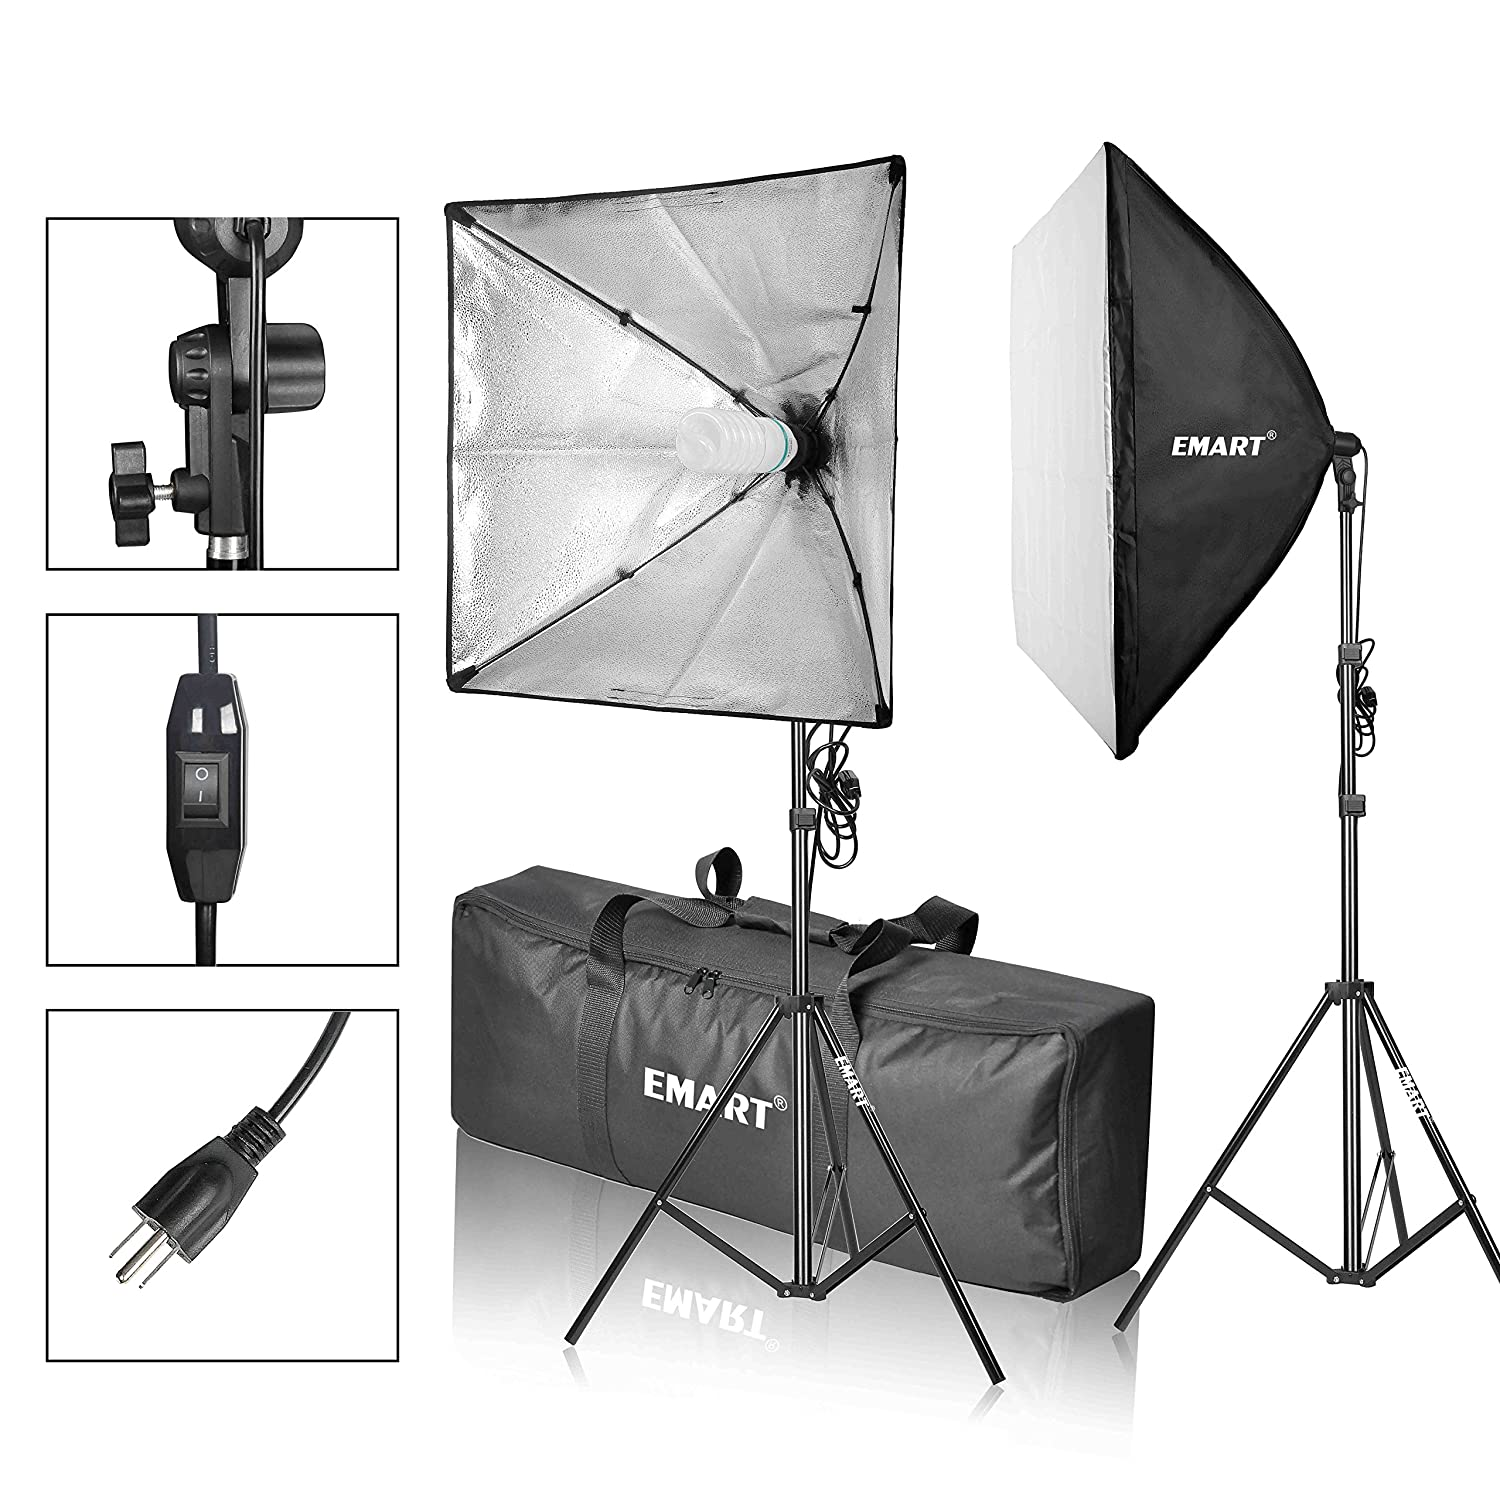 Emart Photography Softbox Lighting Kit, Photo Equipment Studio Softbox 20' x 27', 45W Dimmable LED with Double Color Temperature for Portrait Video and Shooting Photo Equipment Studio Softbox 20 x 27 Emartinc 4331906965